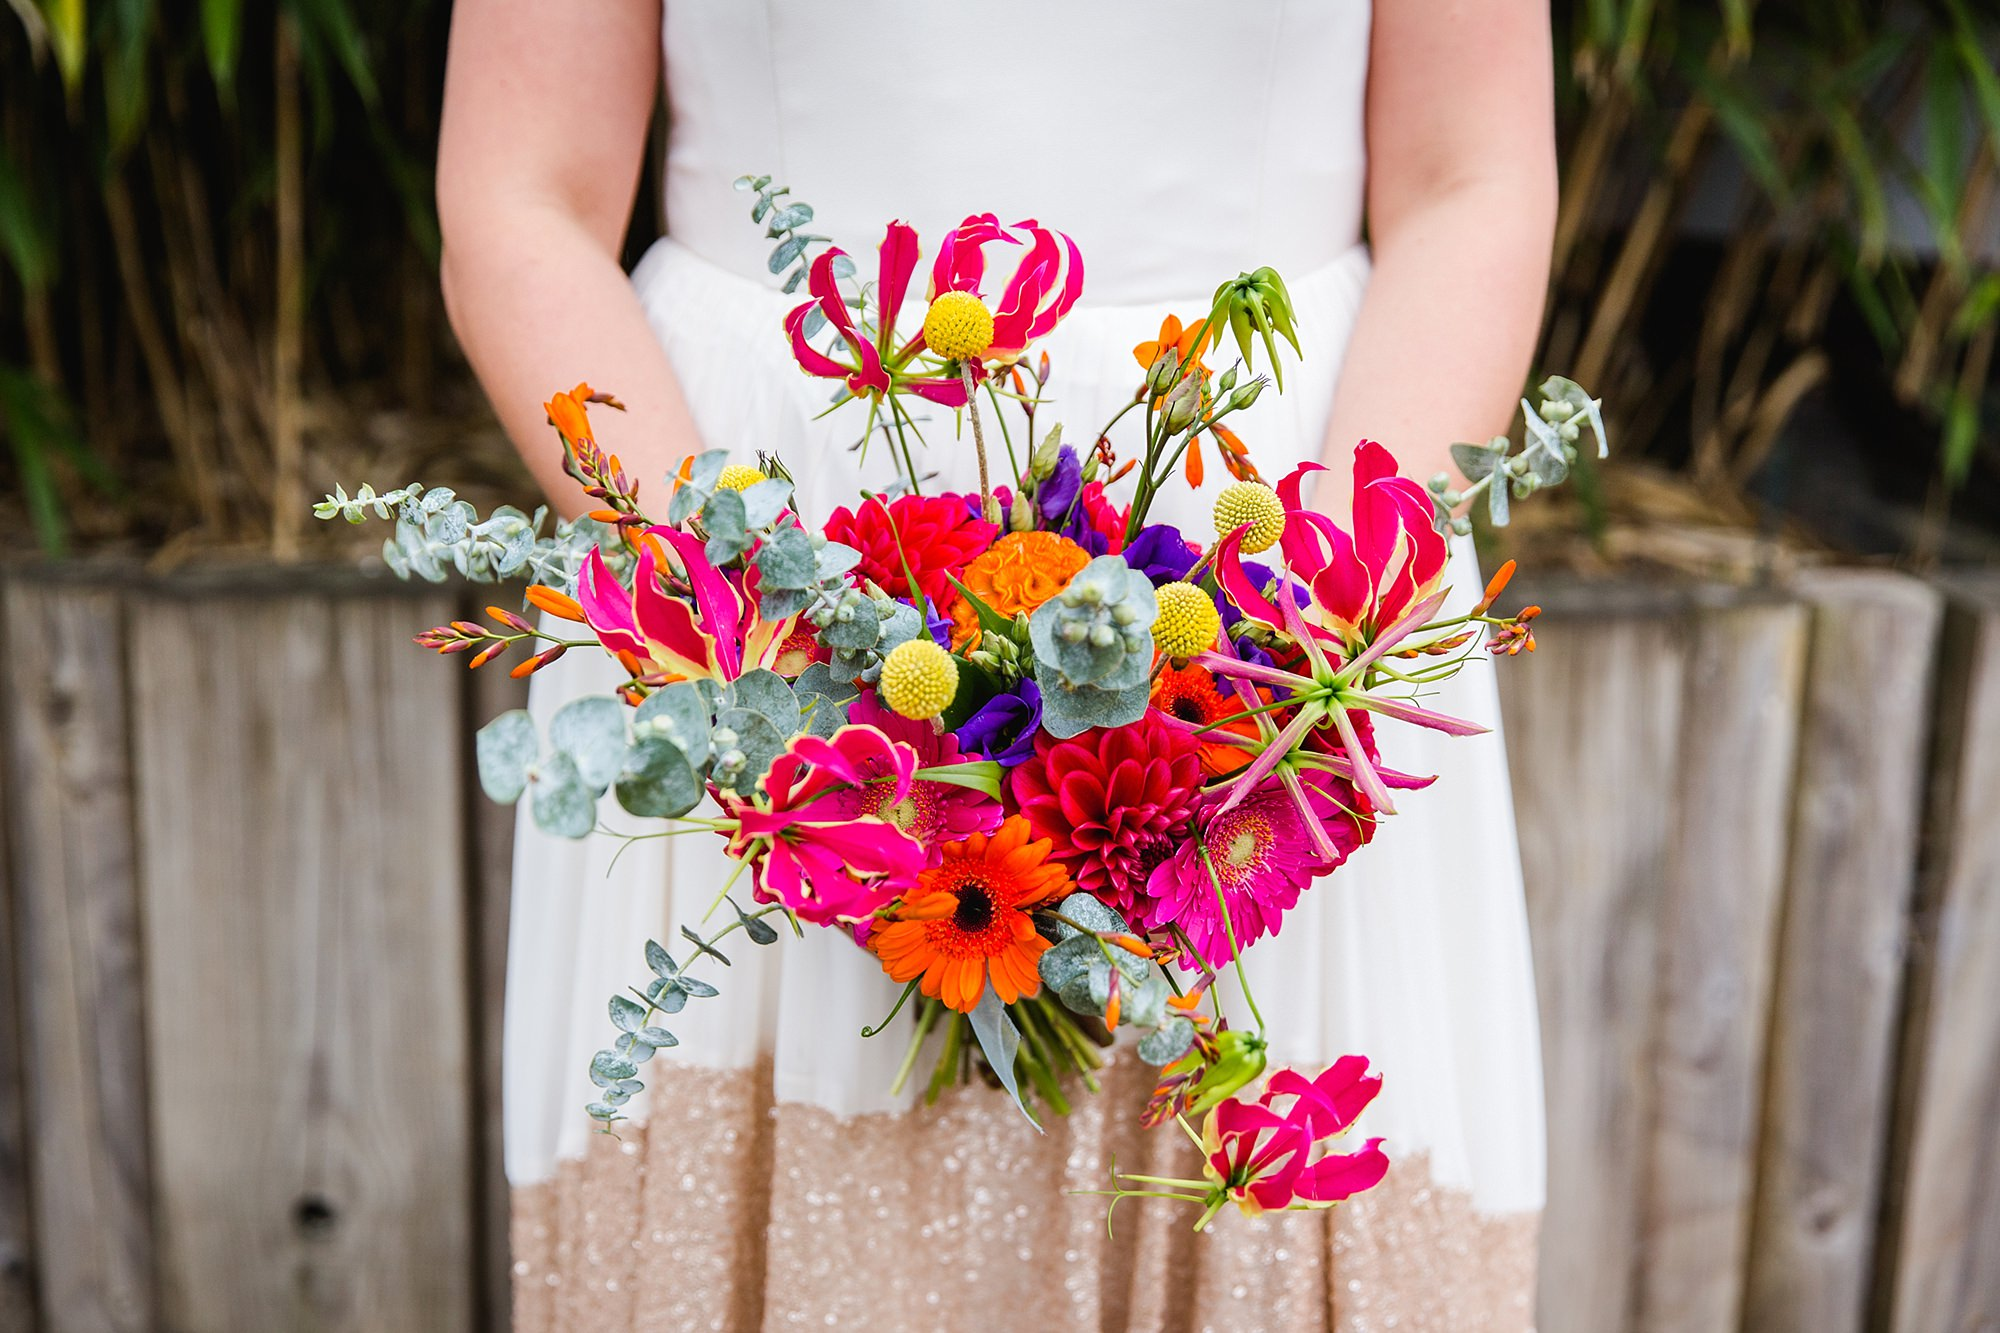 Fun London Wedding bright and colourful bride's bouquet